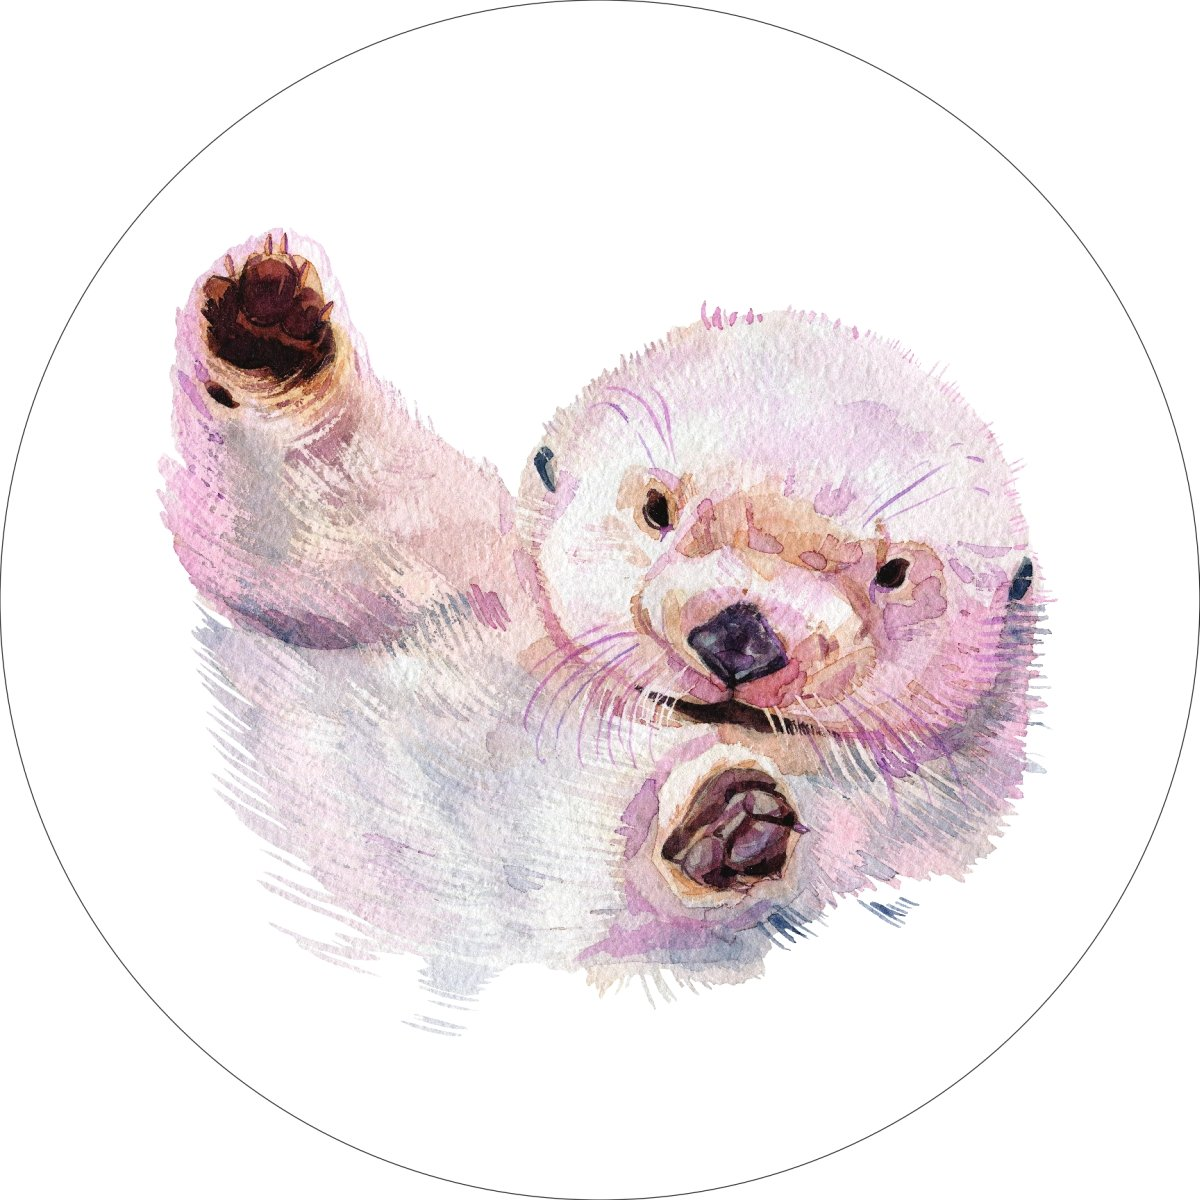 Sea Otter Home Wall Shelf Decor Animal Decorations Watercolor Round Sign - 18 Inch, Plastic